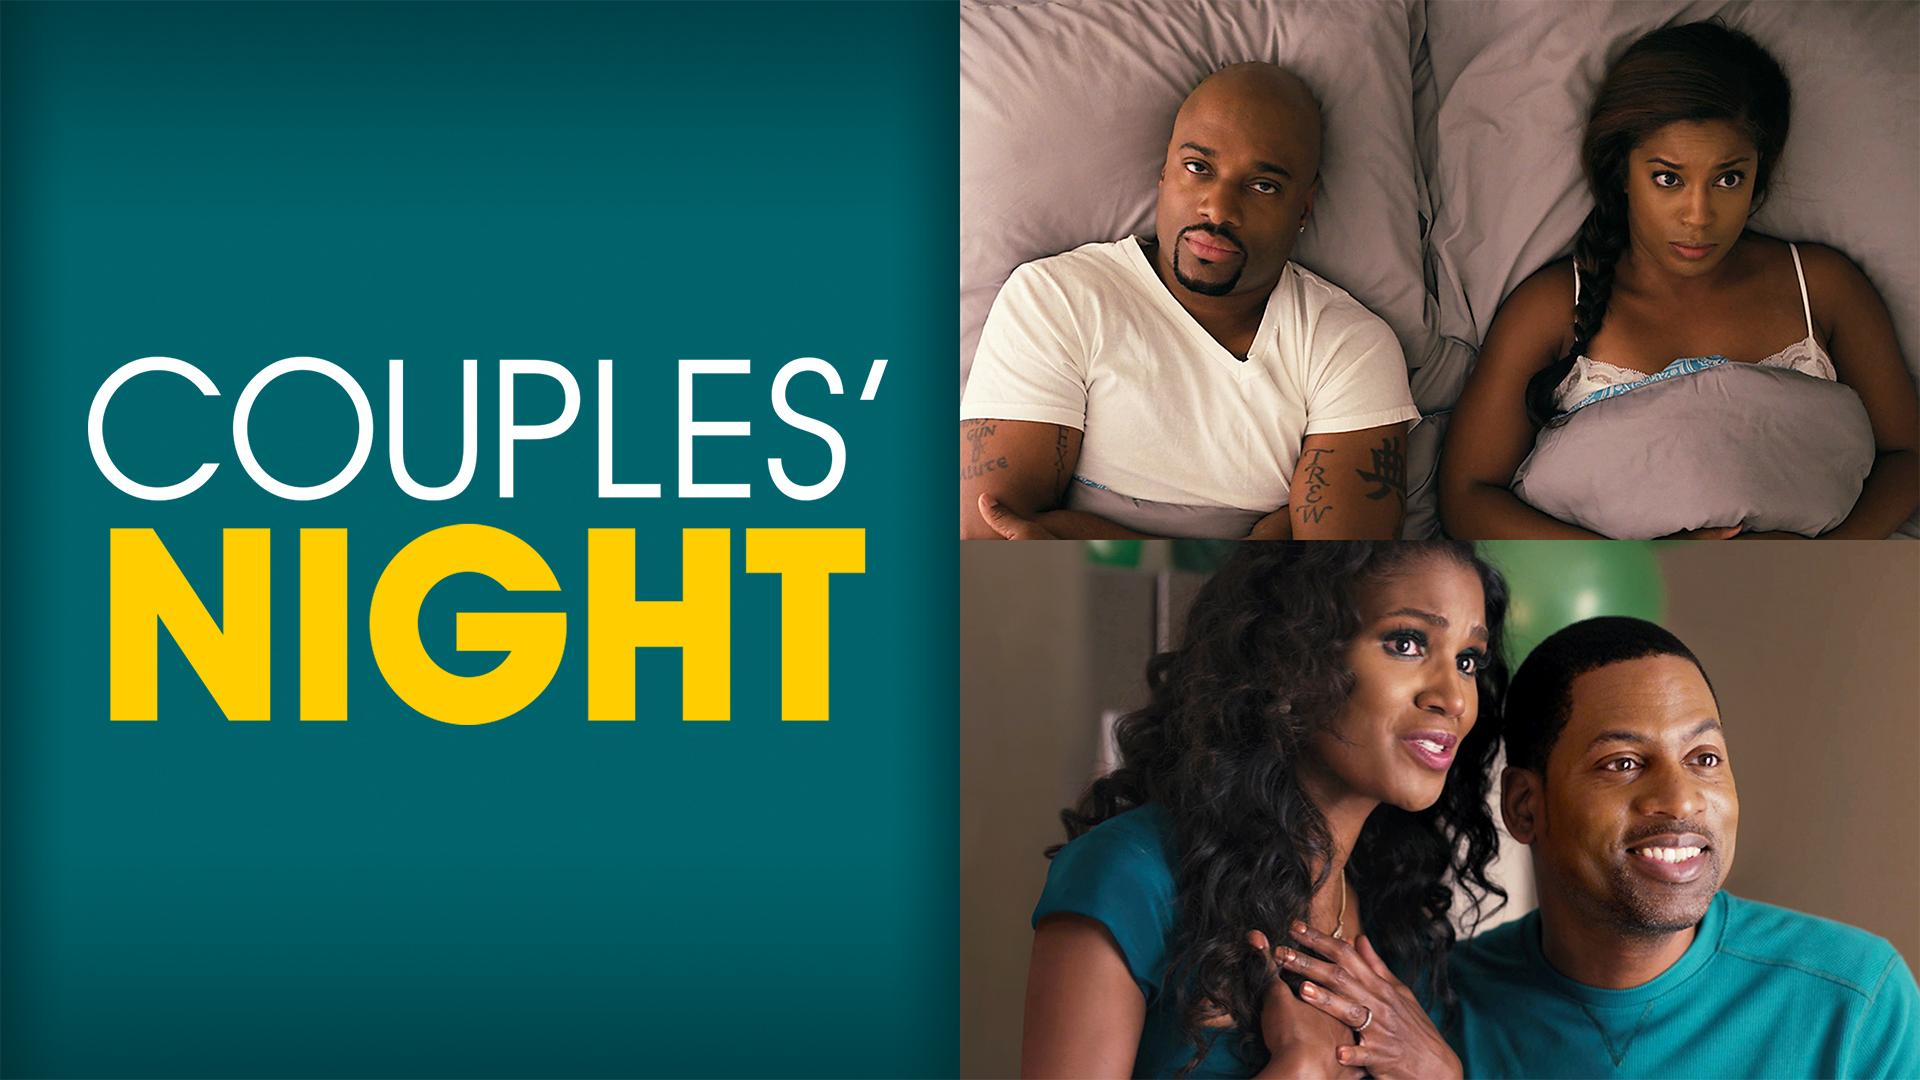 Couples' Night - Comedy category image